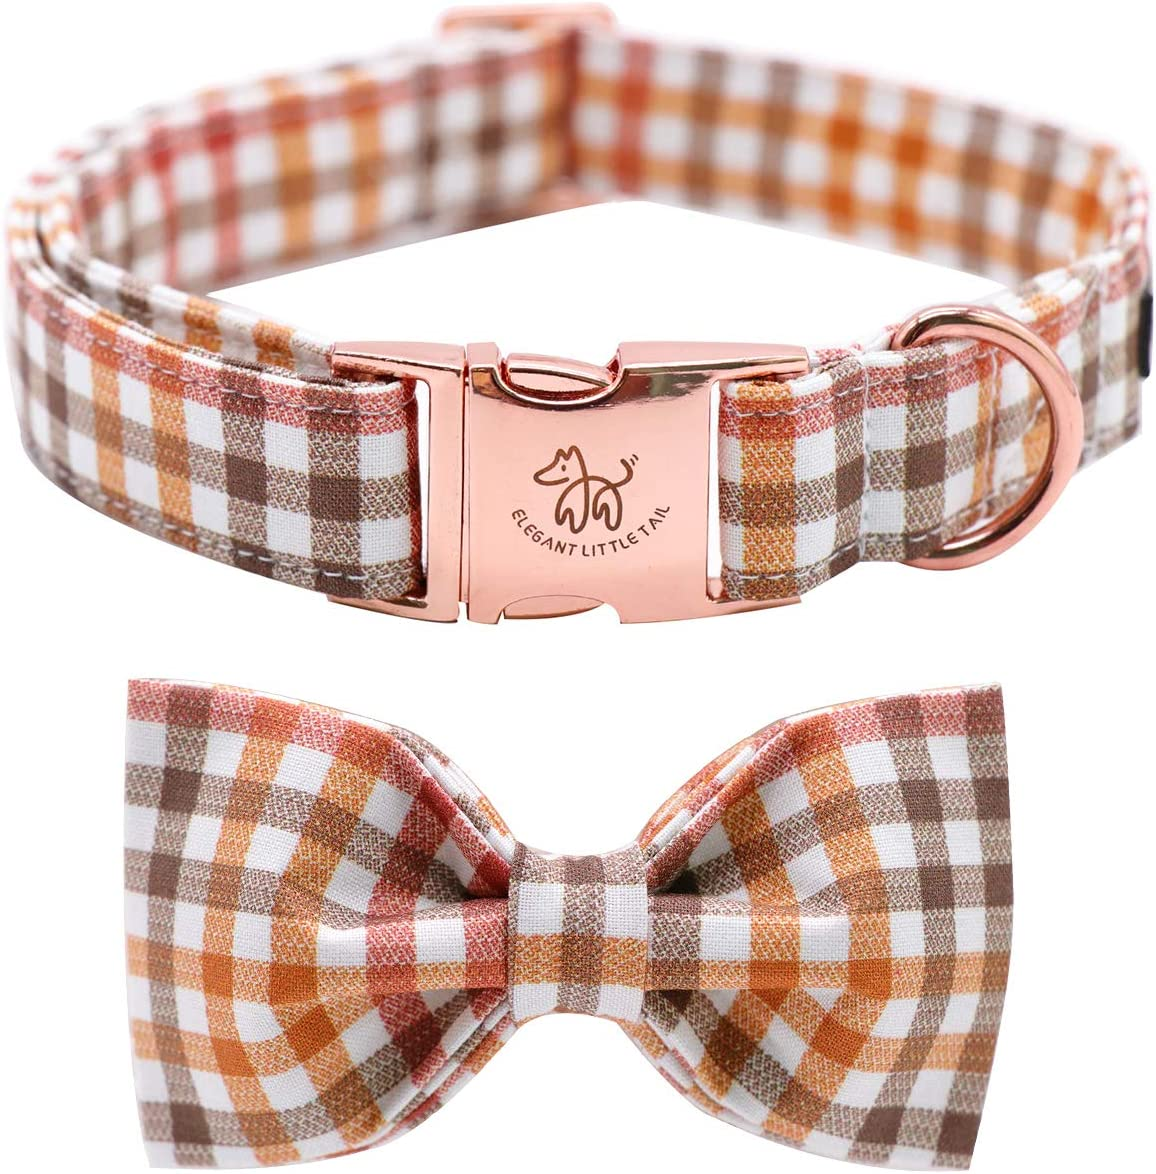 Be super welcome Elegant little tail Dog Collar Bowtie with Year-end gift Comfotable Bow